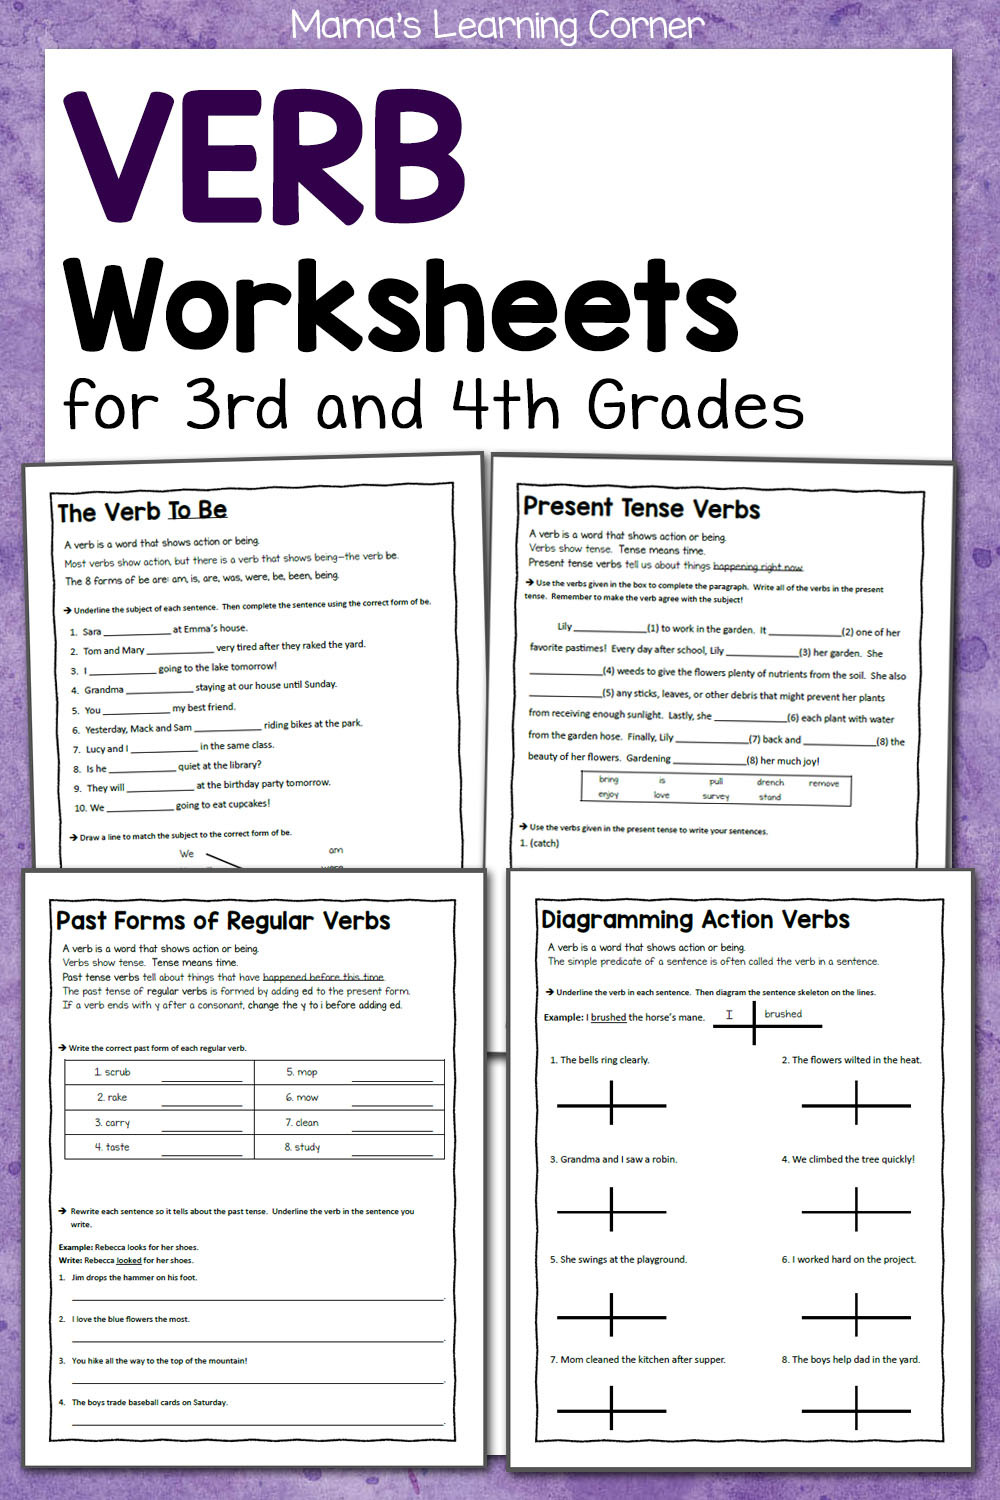 3rd Grade Verb Tense Worksheets Verb Worksheets for 3rd and 4th Grades Mamas Learning Corner